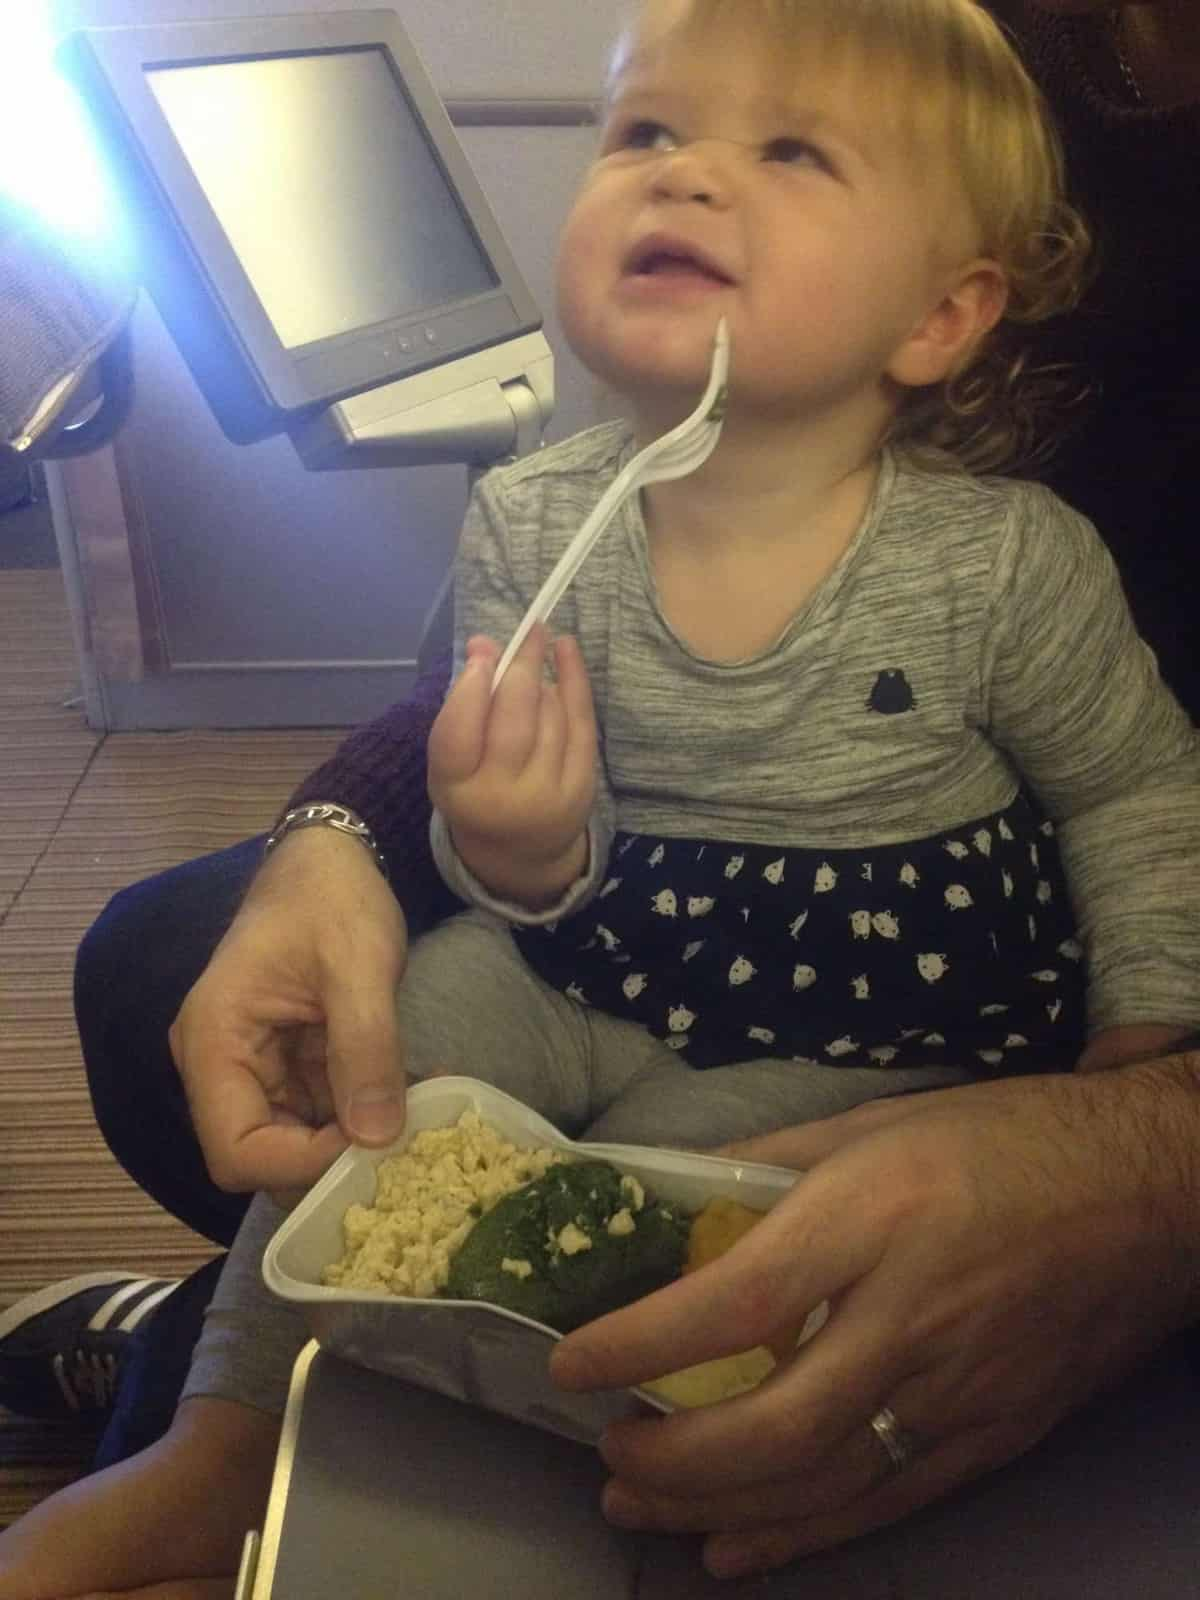 Eating at Bassinet seats with infant